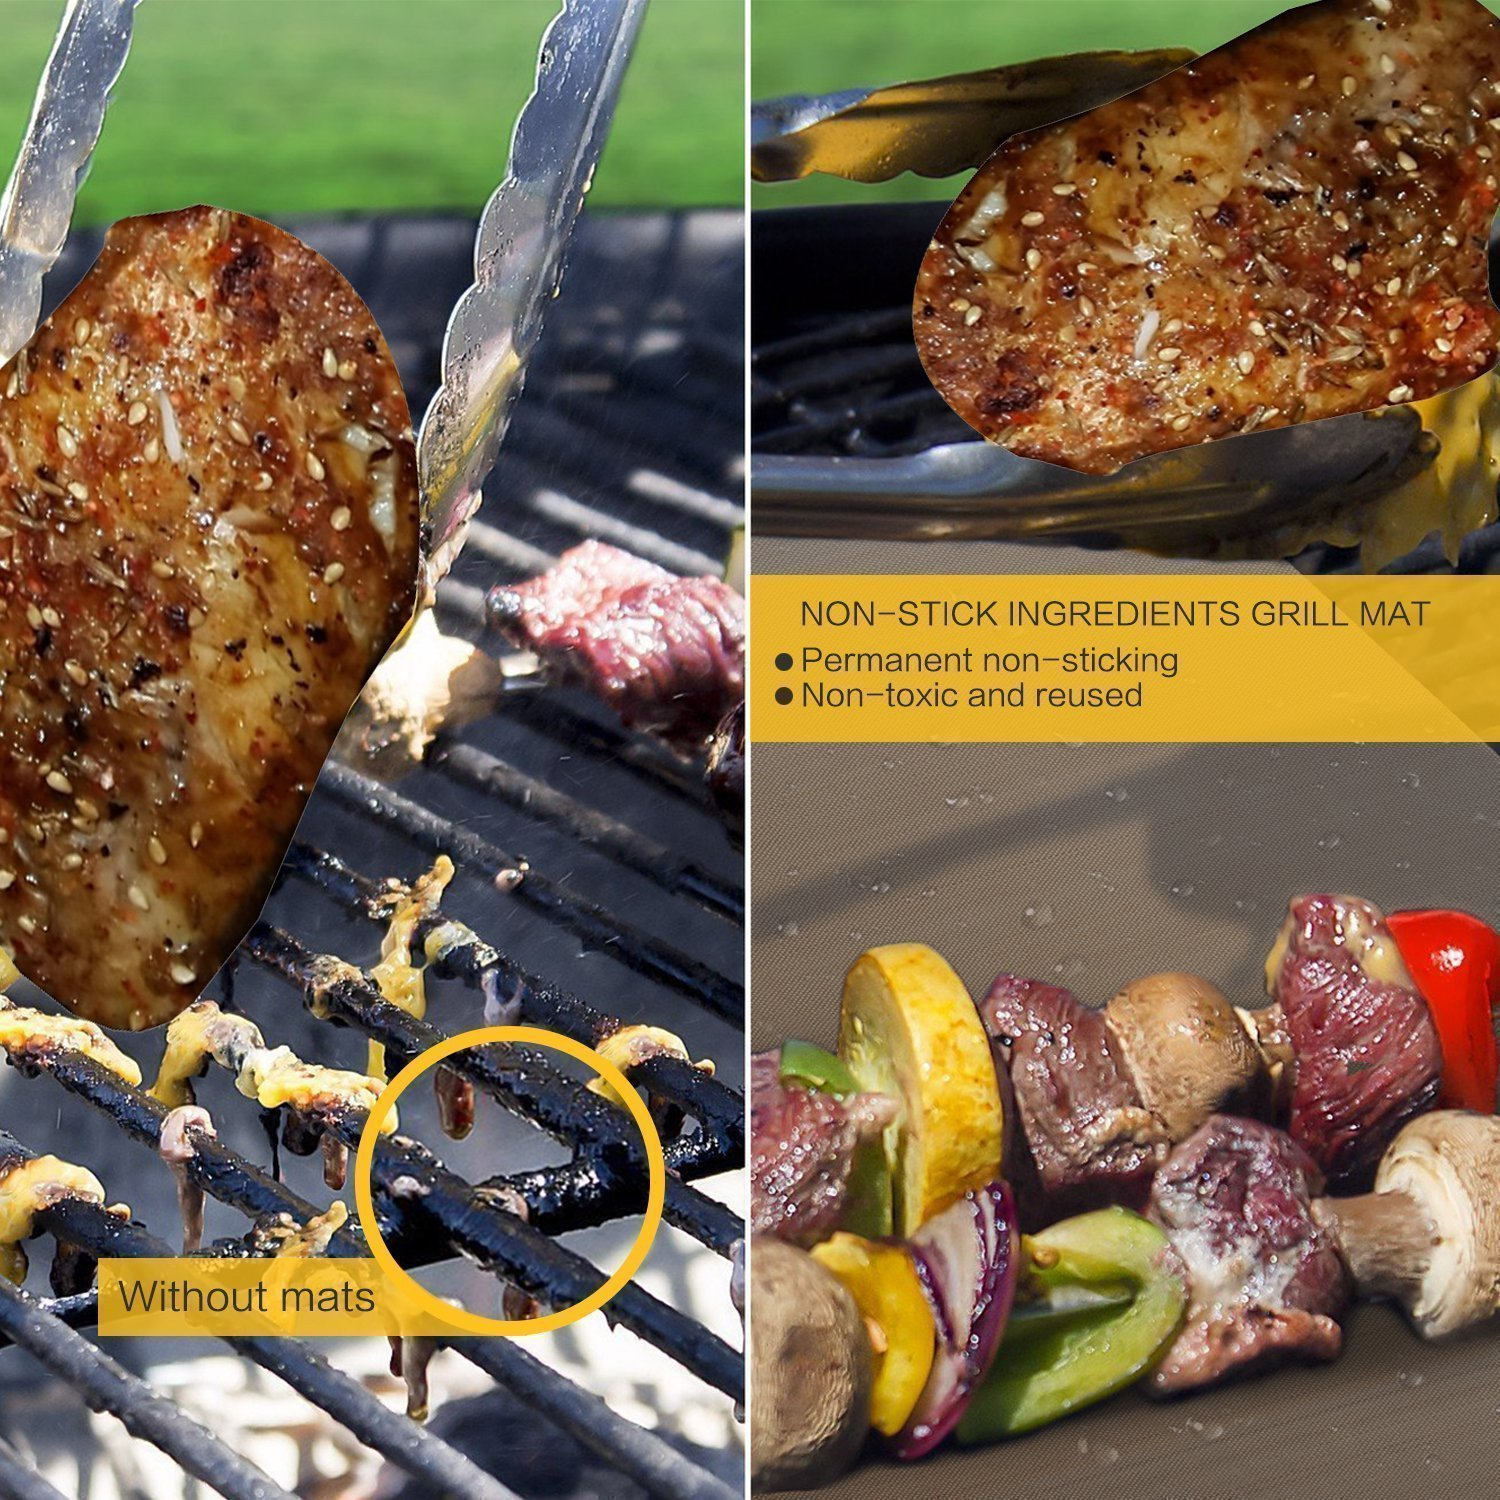 Bake Mat Set of 5 Non Stick BBQ Grill & Baking Mats - Reusable, Easy to Clean - PTFE Teflon Fiber Grill Roast Sheets for Gas, Charcoal, Electric Grill Gold (with 2 Brushes) by EEIEER (Image #4)